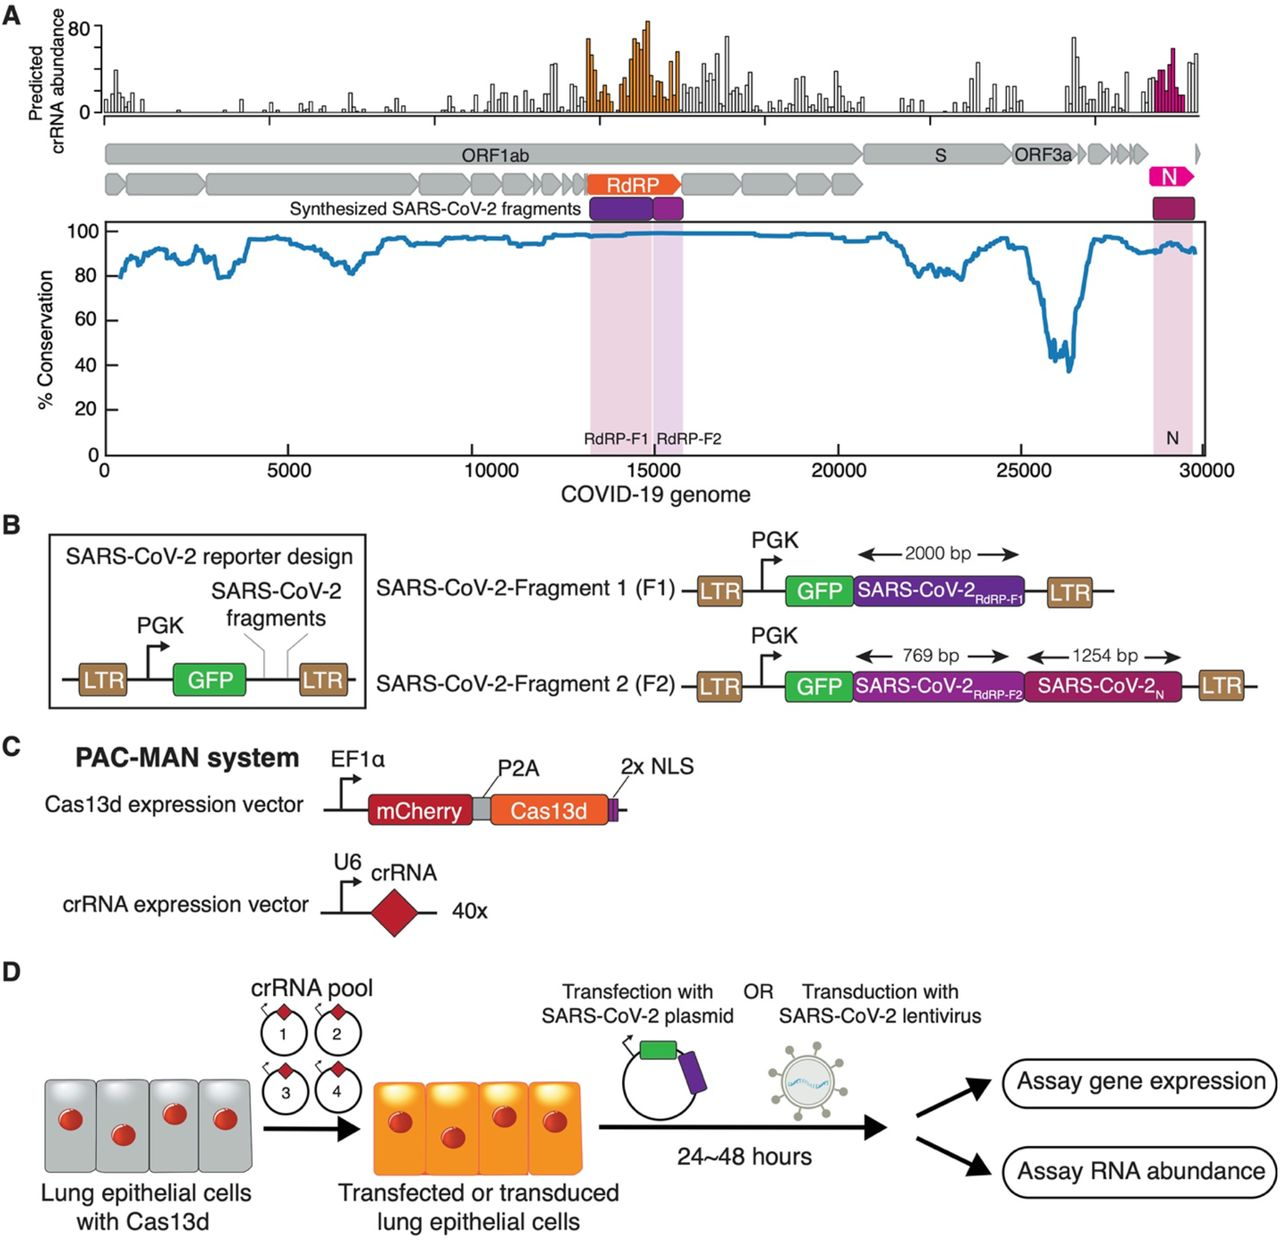 Bioinformatic analysis of CRISPR-Cas13d target sites for SARS-CoV-2 and the PAC-MAN system design. (A) Alignment of sequences from SARS-CoV-2 genomes from 47 patients along with SARS- and MERS-causing coronaviruses. Top: predicted abundance of crRNAs that are able to target SARS-CoV-2 genomes and SARS or MERS; Middle: annotation of genes in the SARS-CoV-2 genomes, along with conserved regions chosen to be synthesized into the SARS-CoV-2 reporters (in magenta and purple). Color regions indicate the synthesized SARS-CoV-2 fragments; Bottom: the percent of conservation between aligned viral genomes. See Supplemental Table 2 for the designed crRNA sequences and Supplemental Table 3 for synthesized SARS-CoV-2 fragments. (B) Schematic of the two reporters (SARS-CoV-2-F1/F2) created with synthesized viral sequences. SARS-CoV-2-F1 contains GFP fused to a portion of RdRP (RdRP-F1) and SARS-CoV-2-F2 contains GFP fused to portions of both RdRP (RDRP-F2) and N. (C) Schematics for the constructs used to express Cas13d or its crRNAs. (D) Workflow used to challenge Cas13d A549 lung epithelial cells with SARS-CoV-2 reporters.